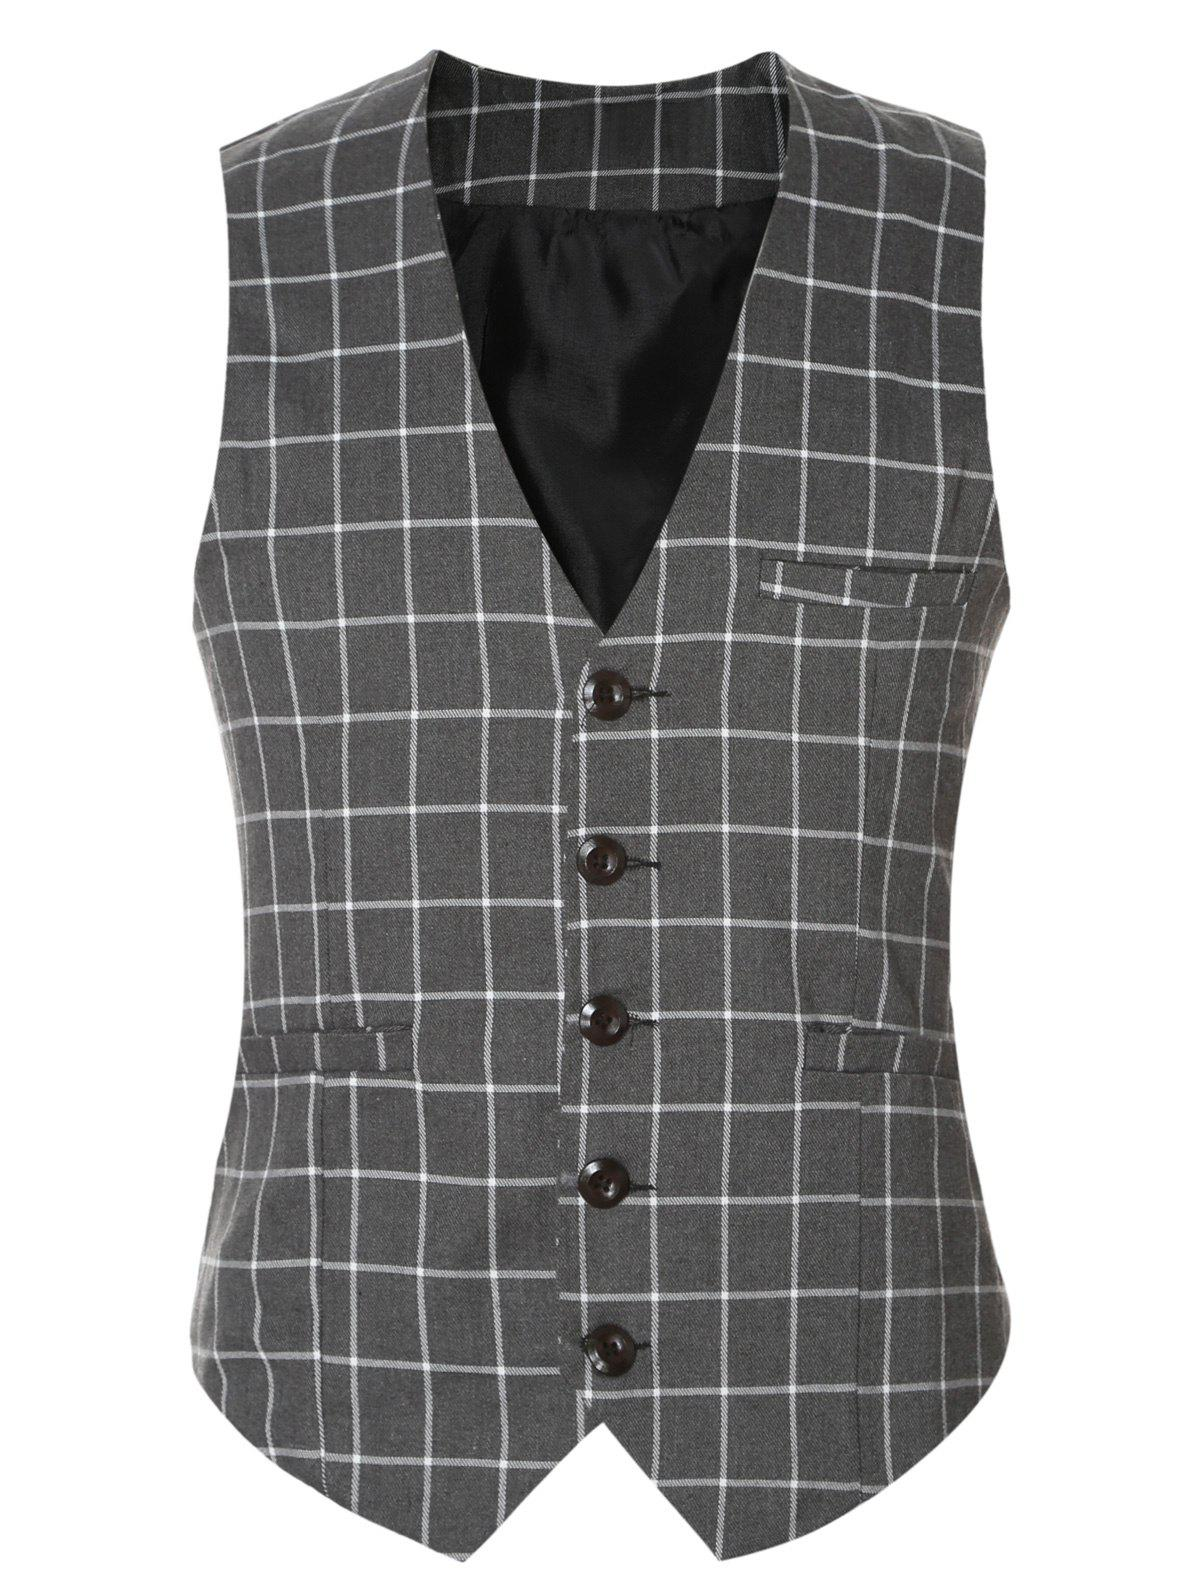 Buckle Back Plaid Single Breasted Men's Vest - GRAY 3XL